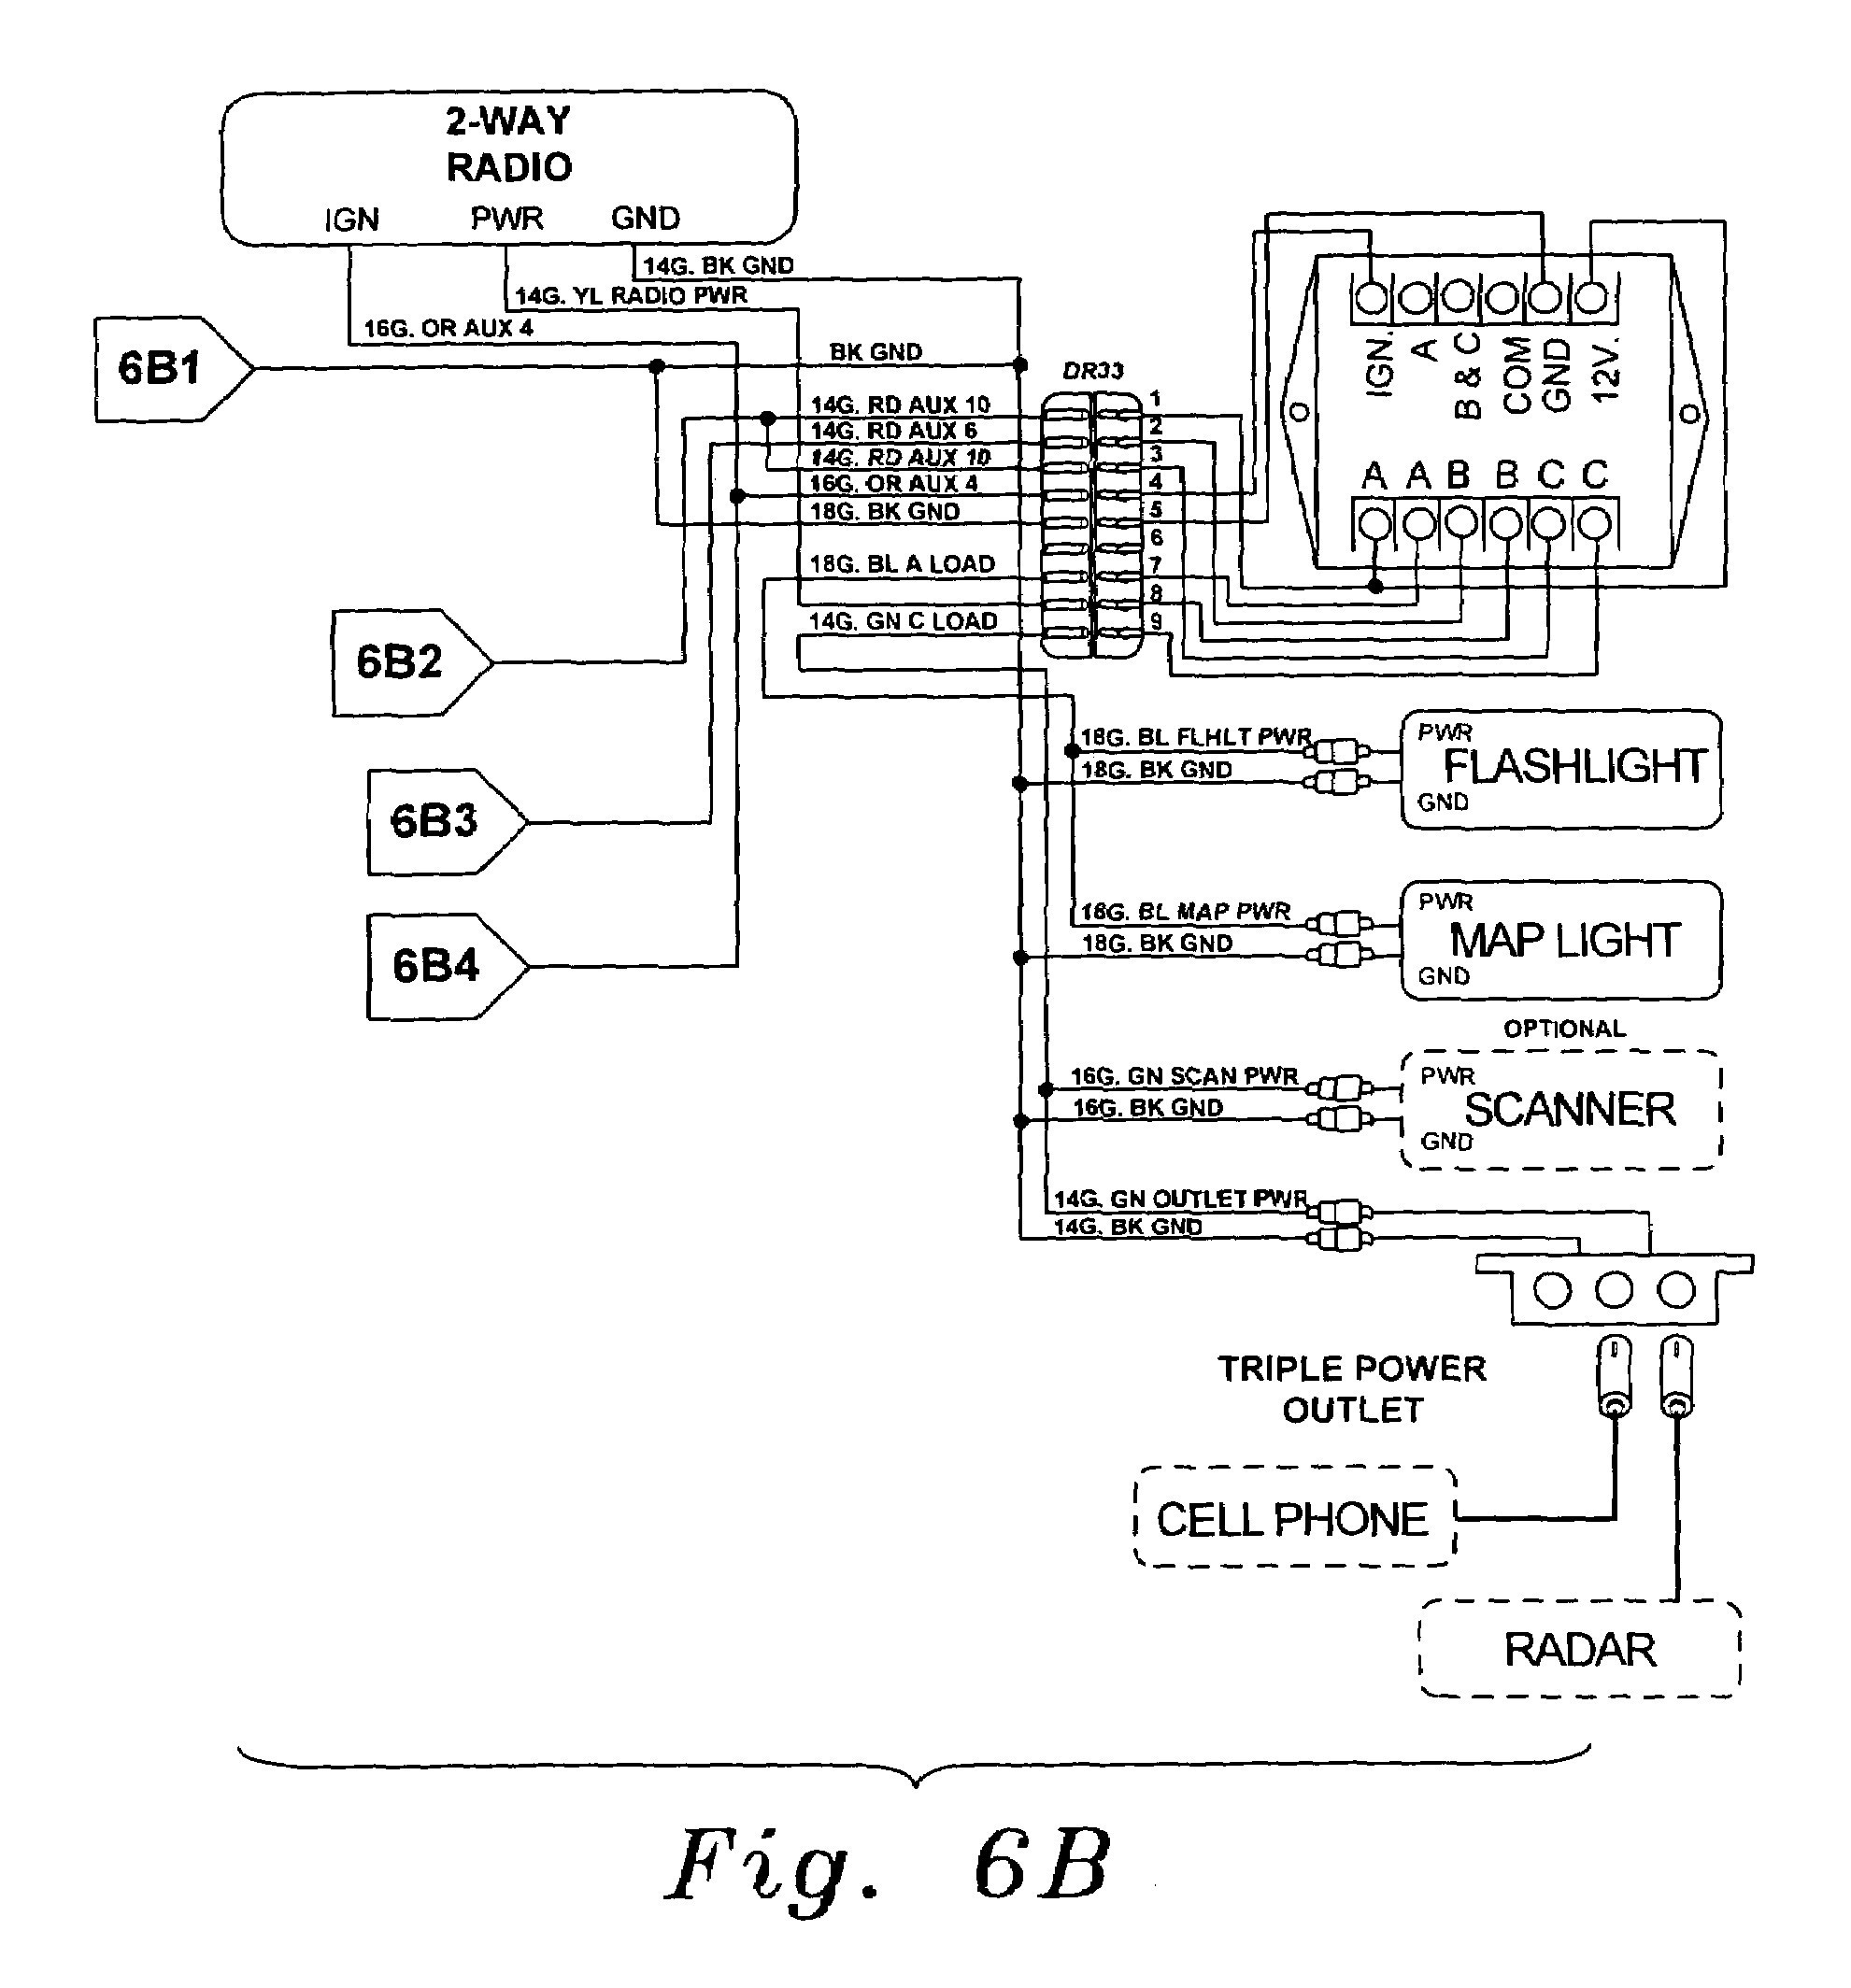 Whelen 295slsa1 Wiring Diagram